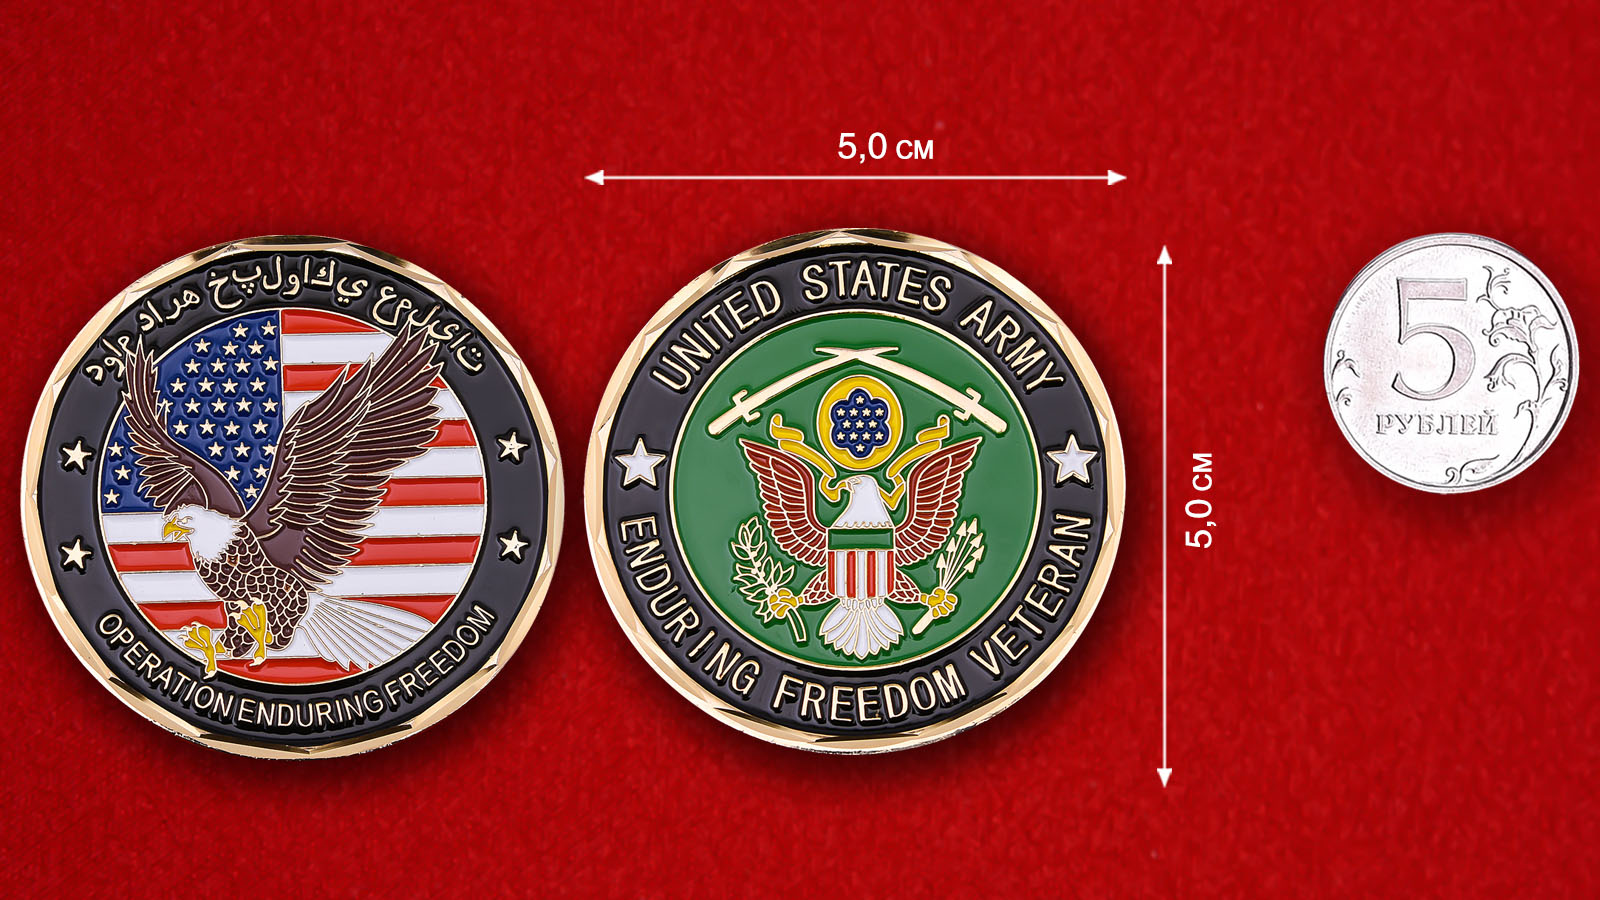 US Army Operation Enduring Freedom Veteran Challenge Coin